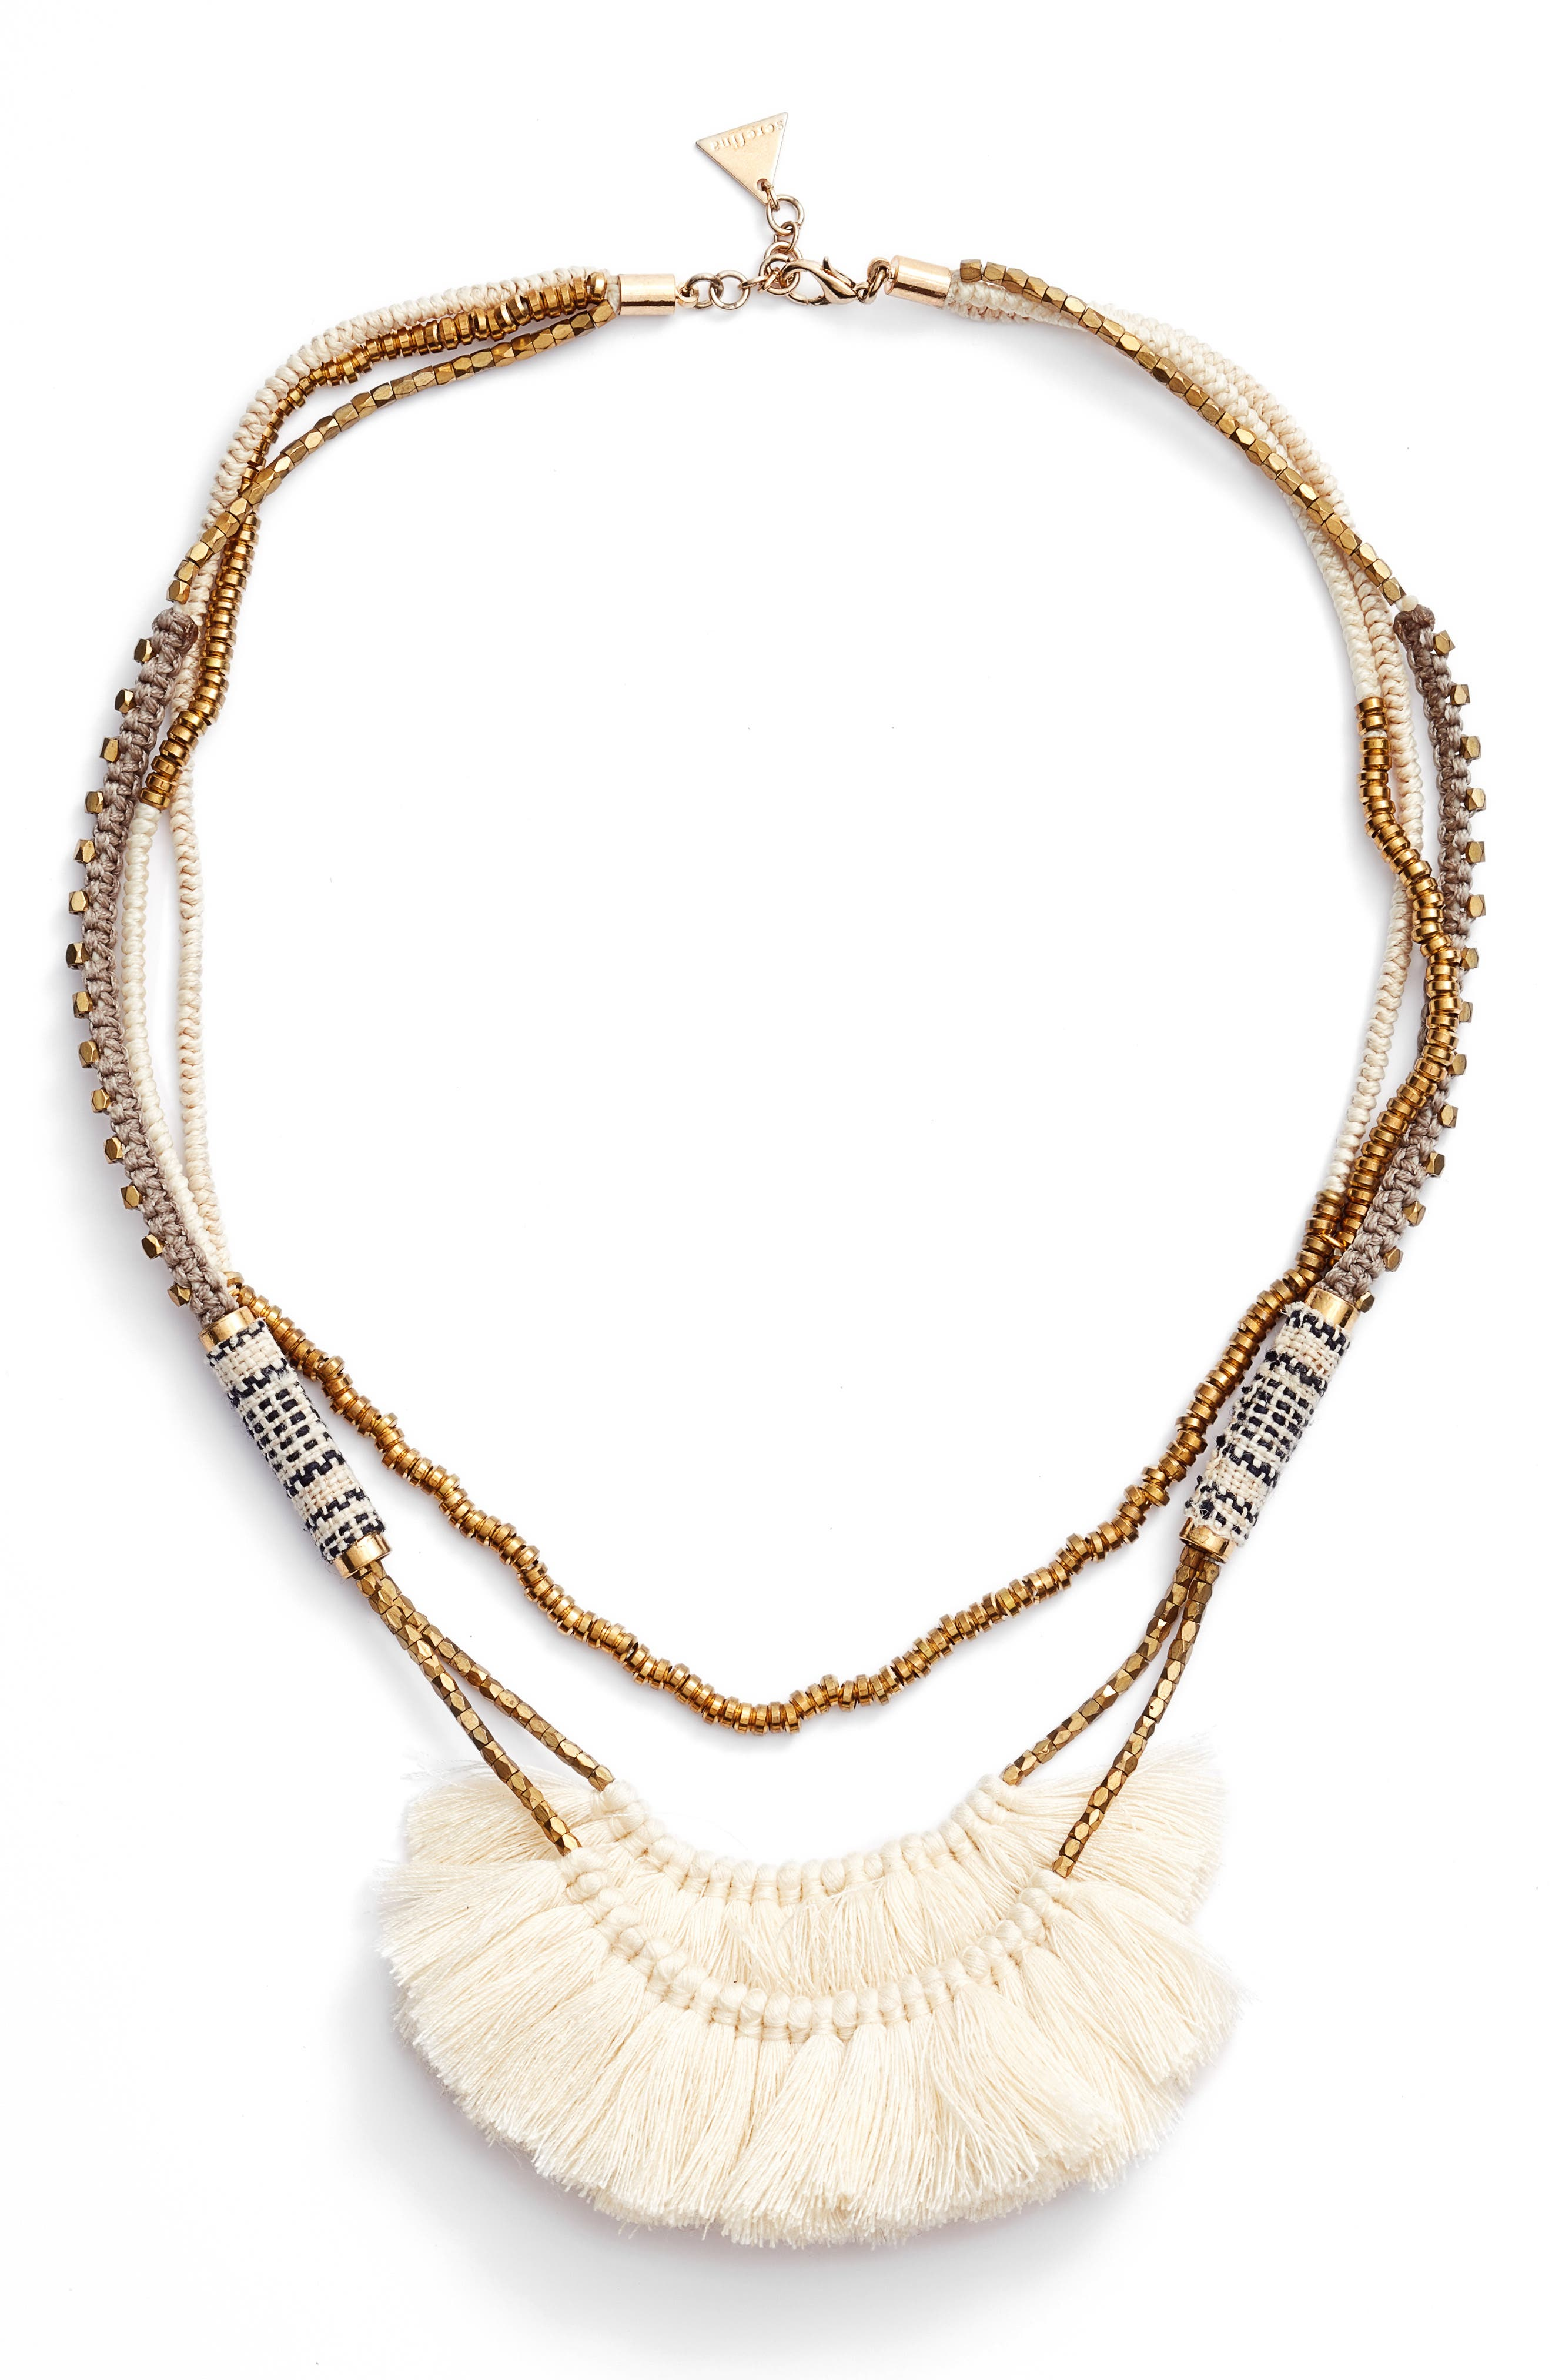 Tassel Statement Necklace,                             Main thumbnail 1, color,                             White